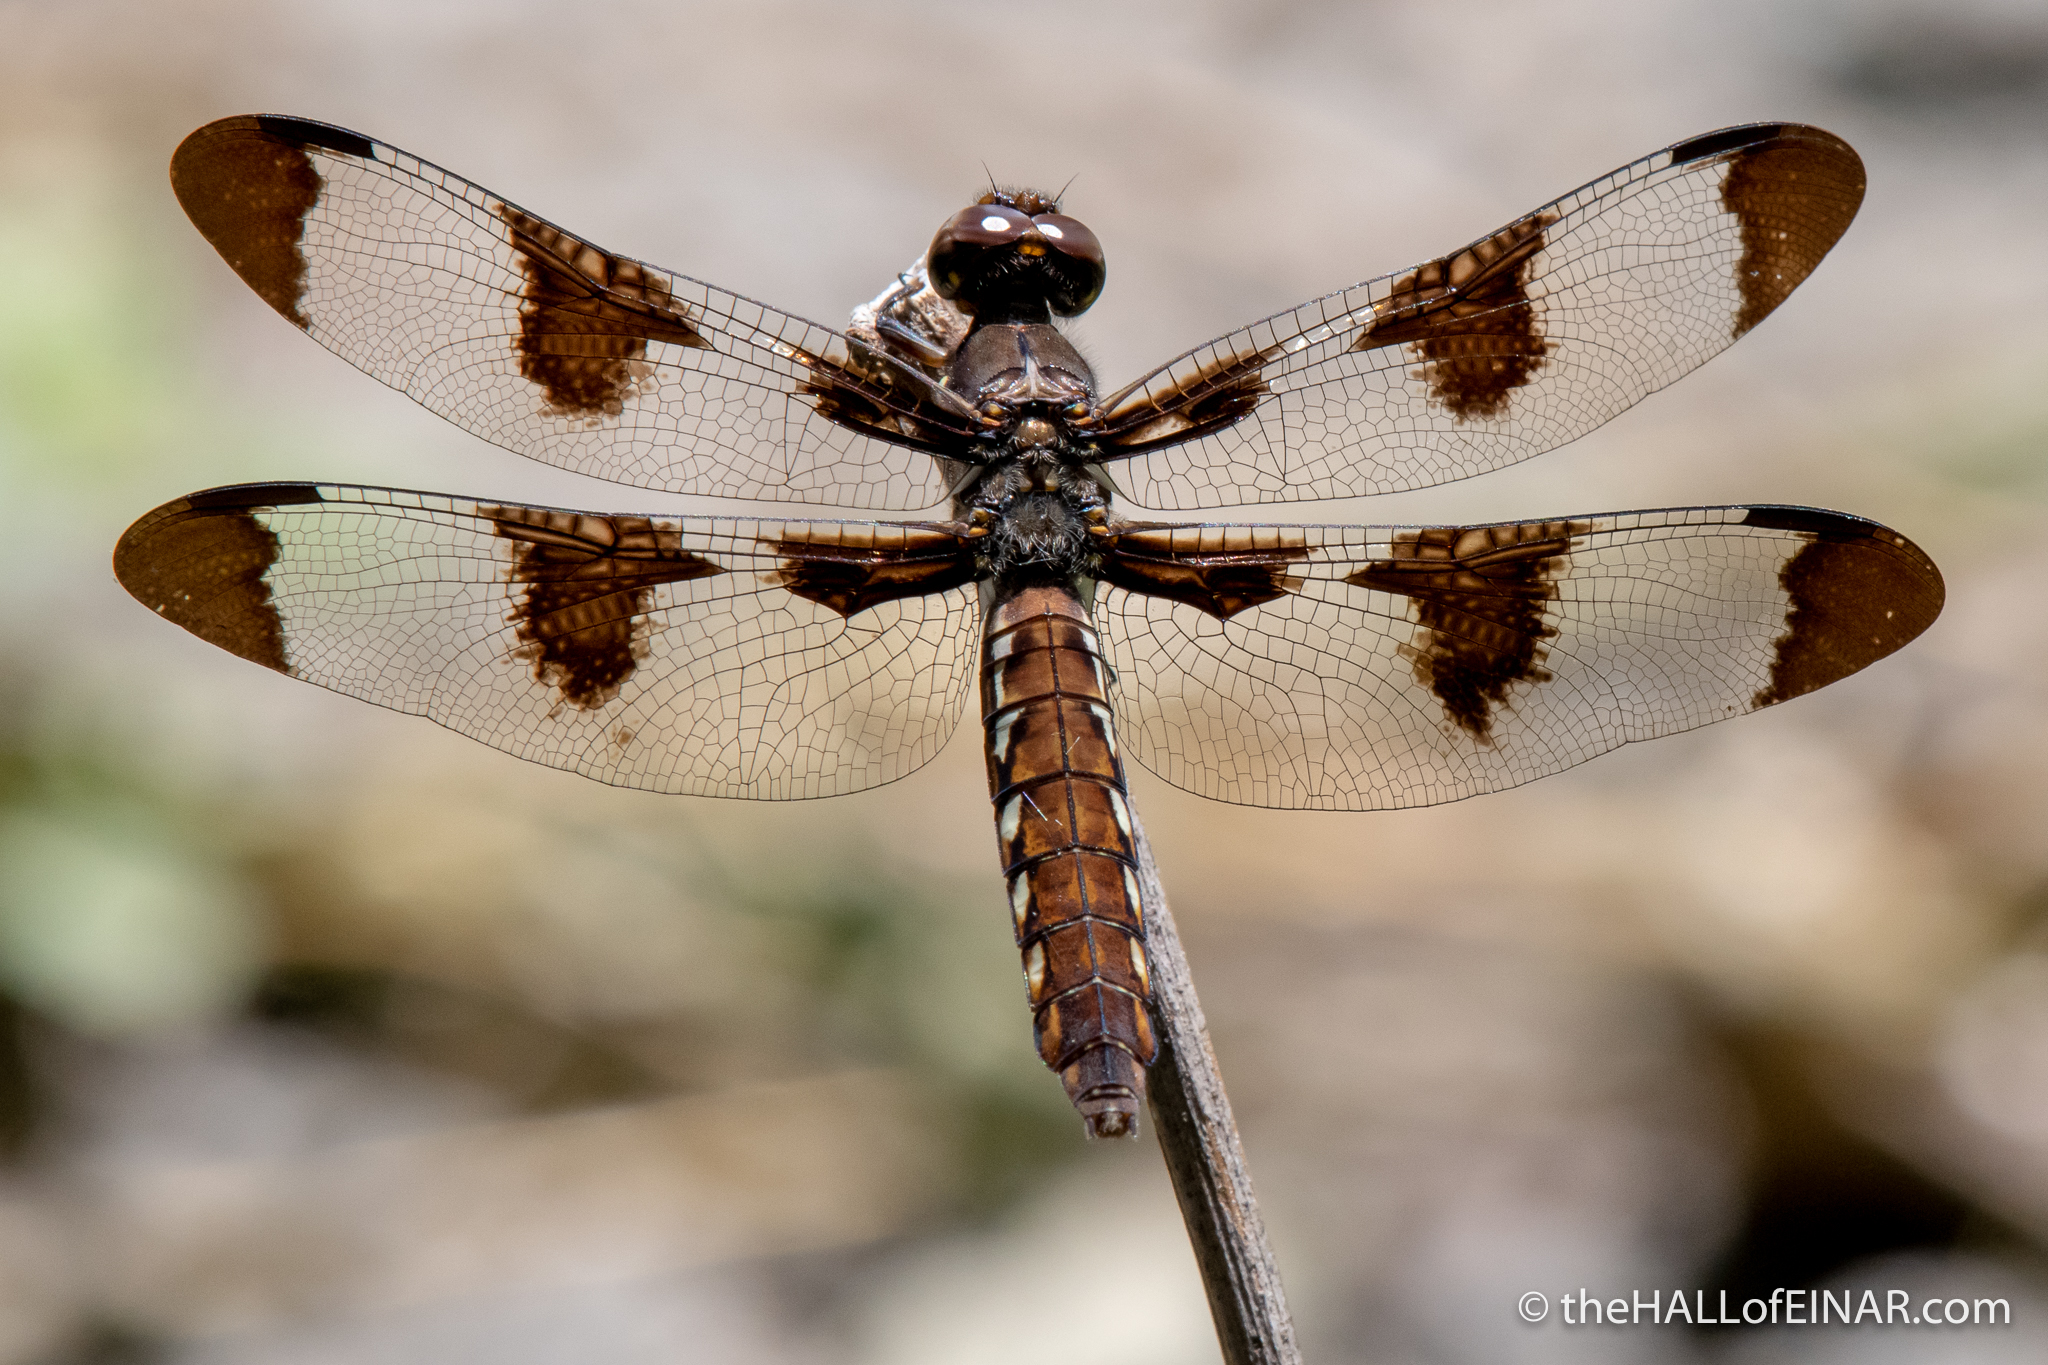 Common Whitetail Dragonfly - The Hall of Einar - photograph (c) David Bailey (not the)